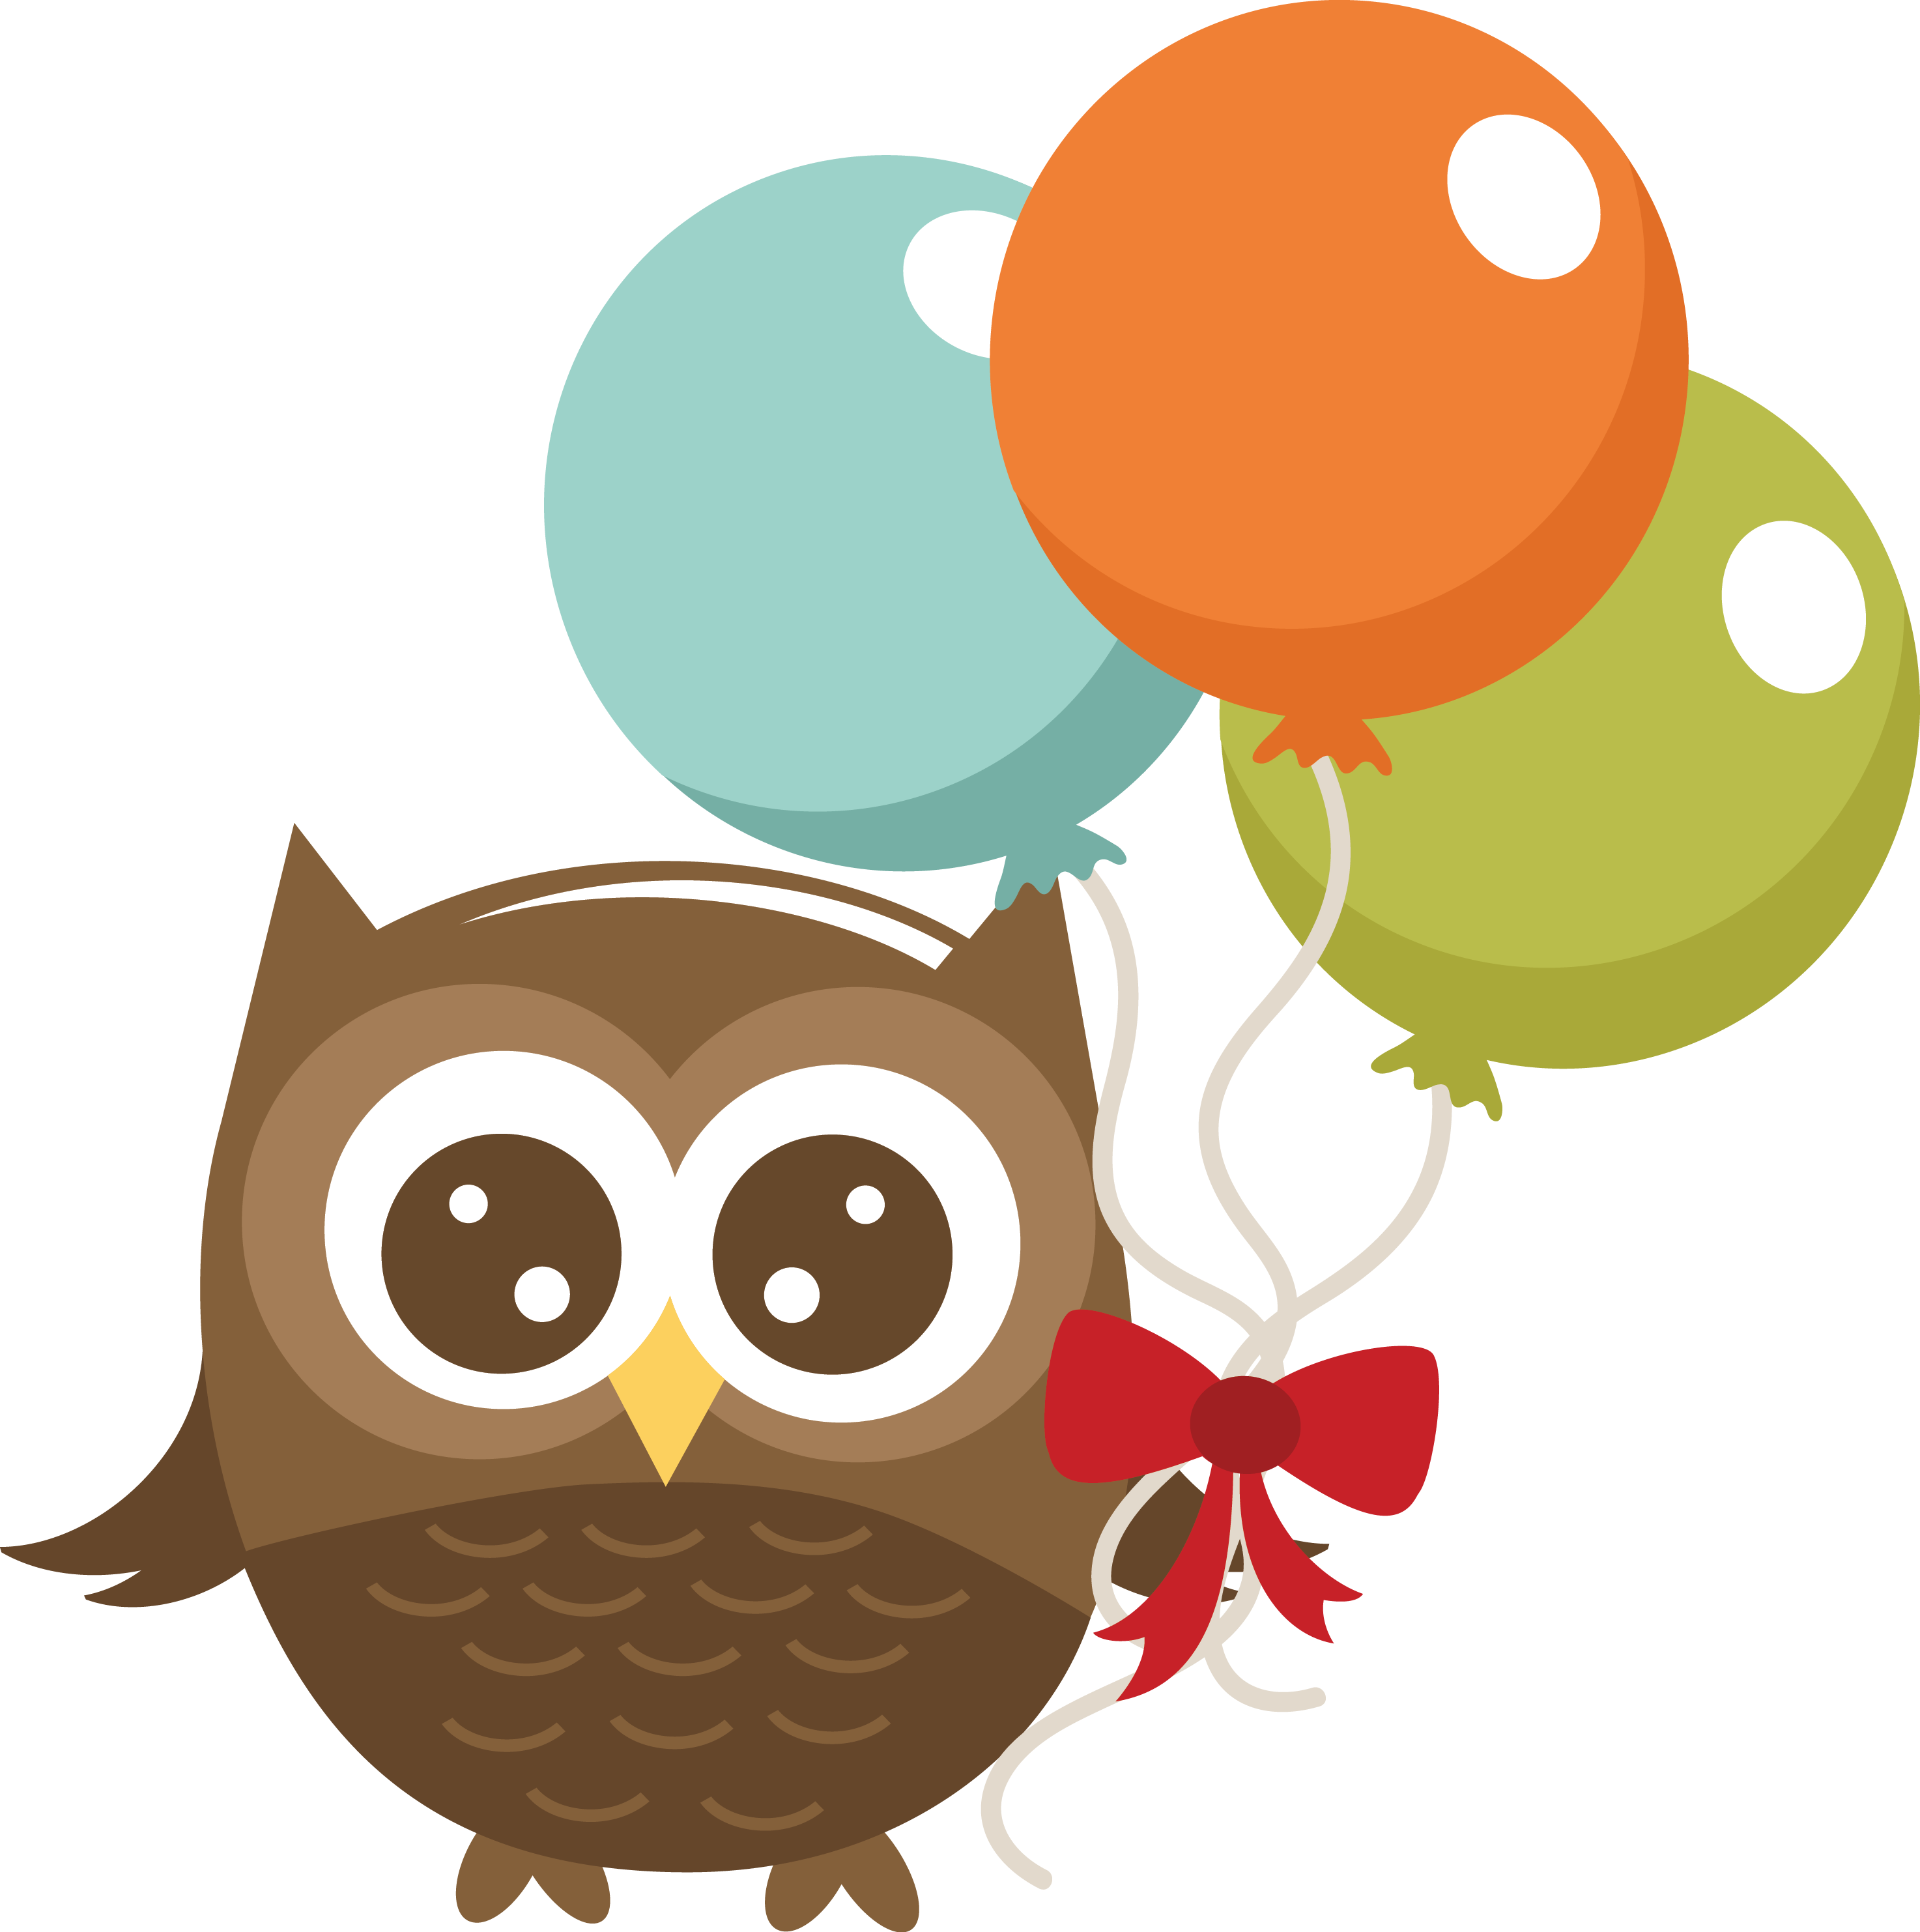 Holding balloons miss kate. Paper clipart owl